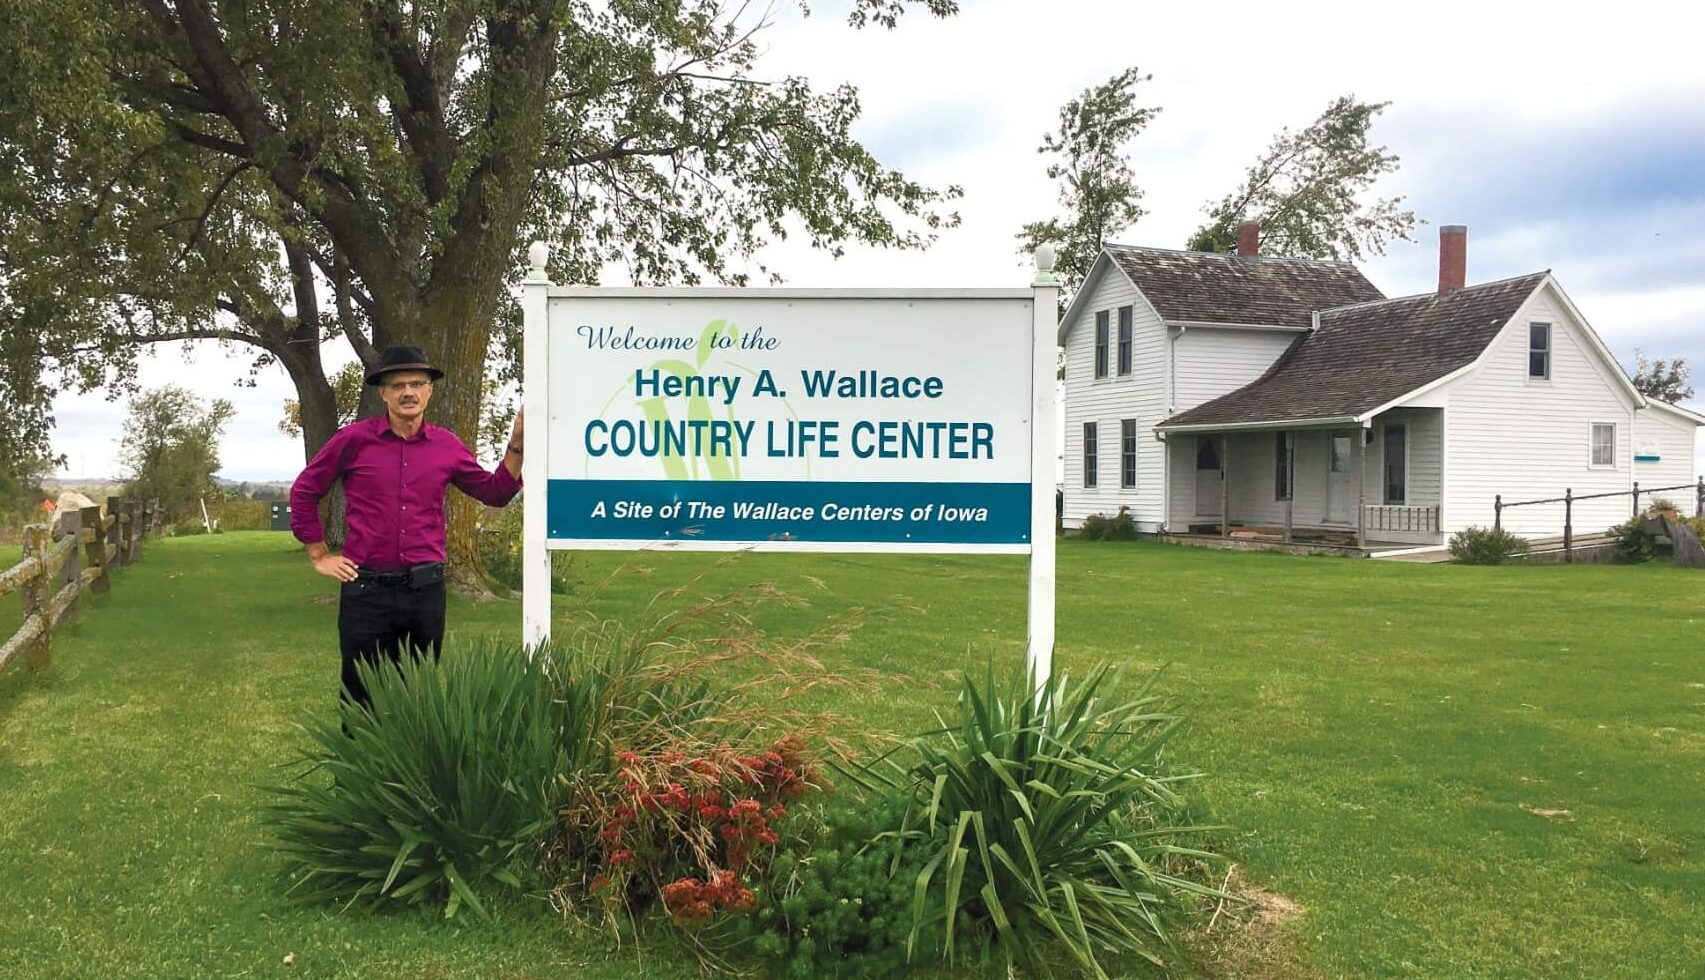 Tony Vyn visited the childhood home of Henry A. Wallace, the namesake of his new chair title.